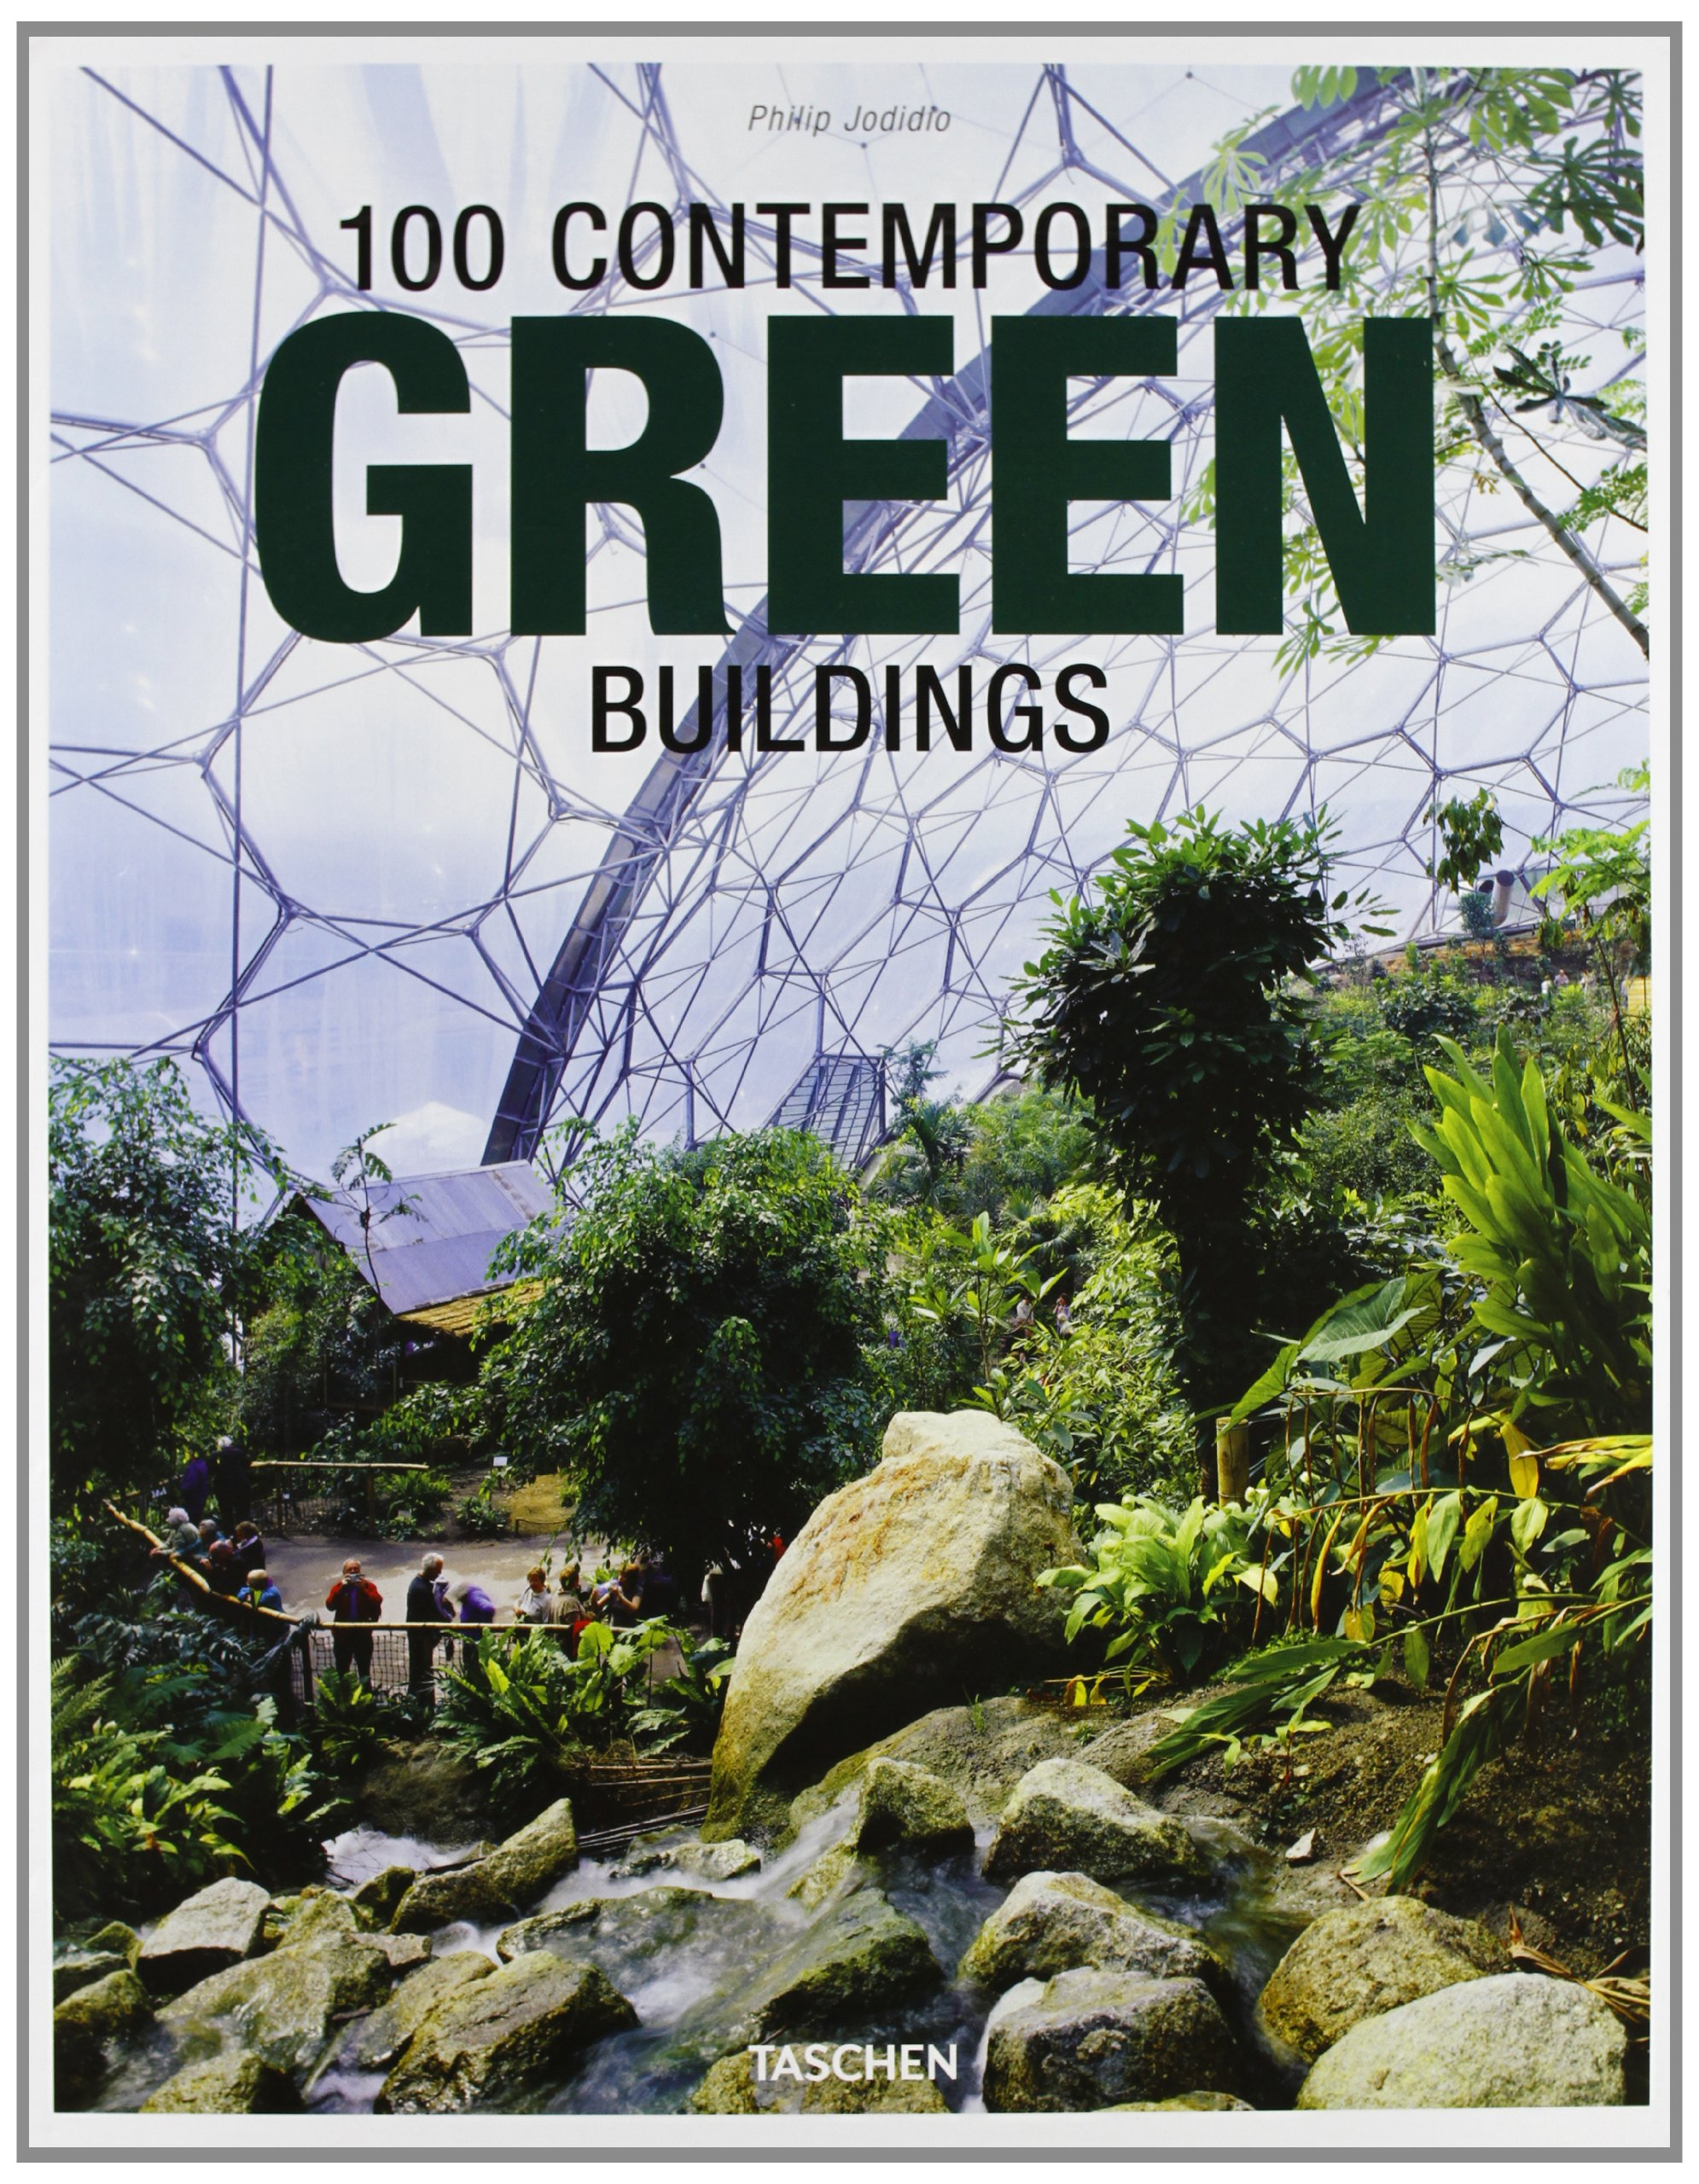 100 Contemporary Green Buildings (2 vol.)